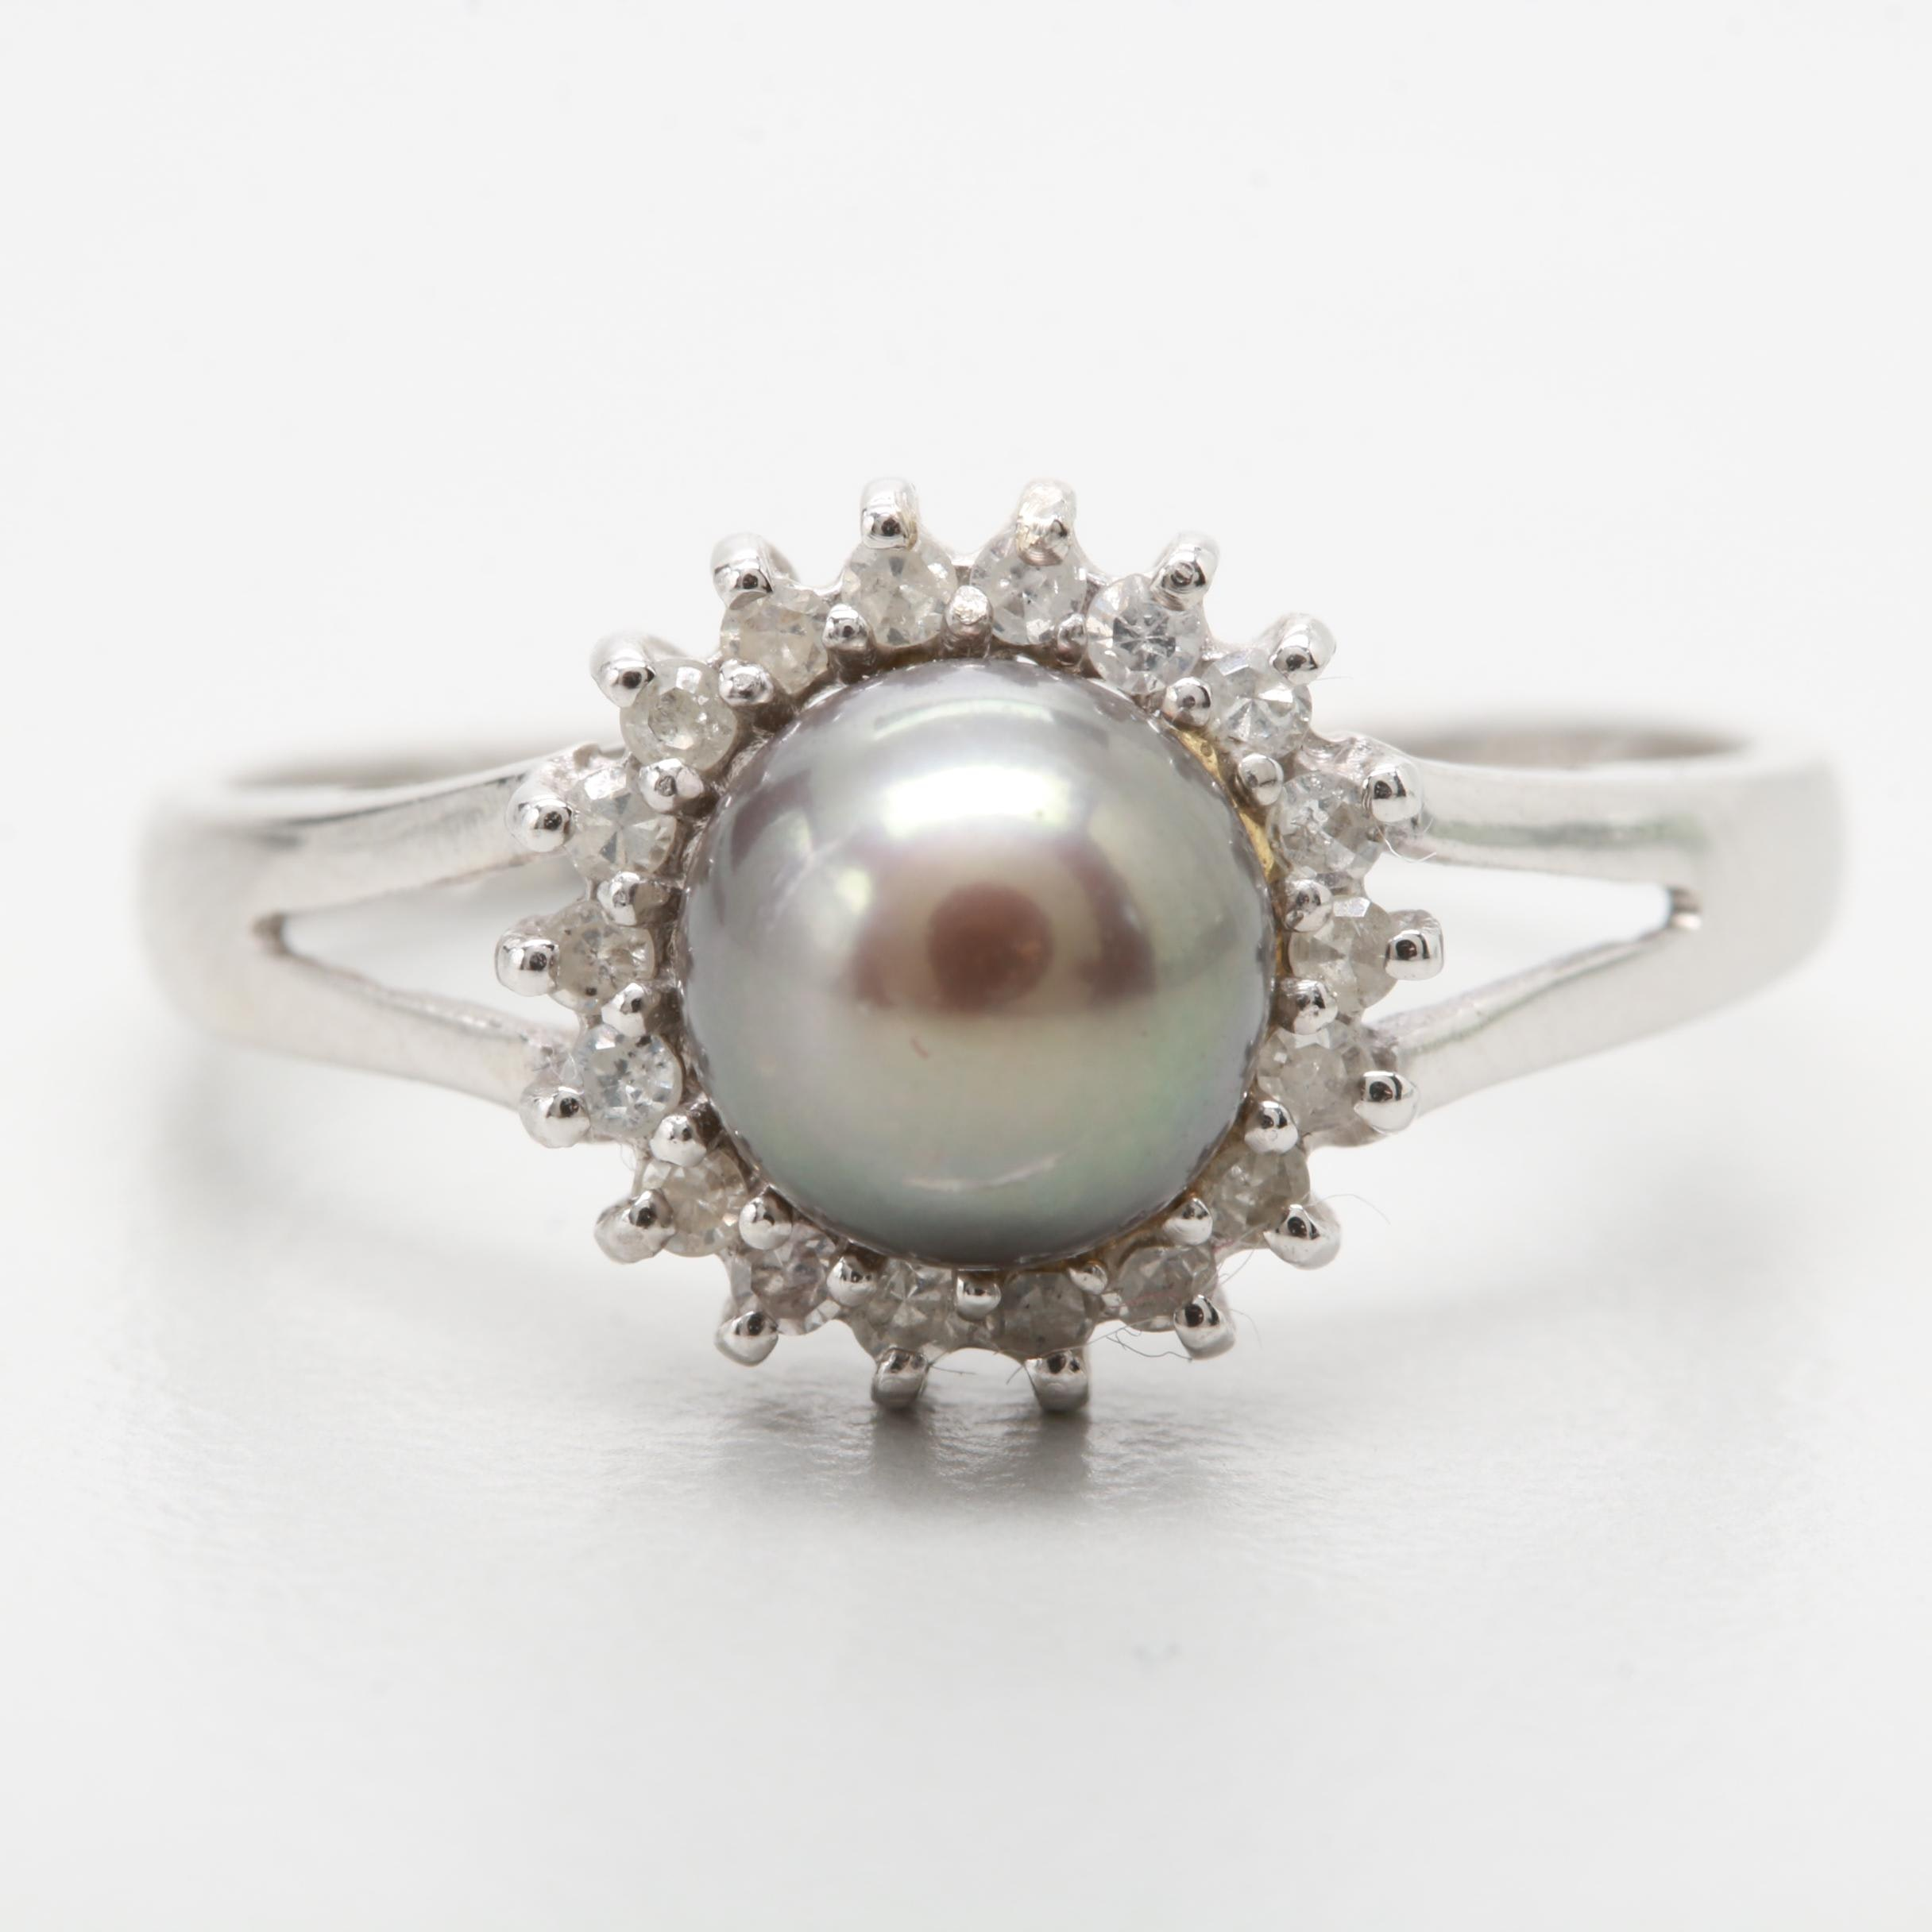 24K White Gold Cultured Pearl and Diamond Ring